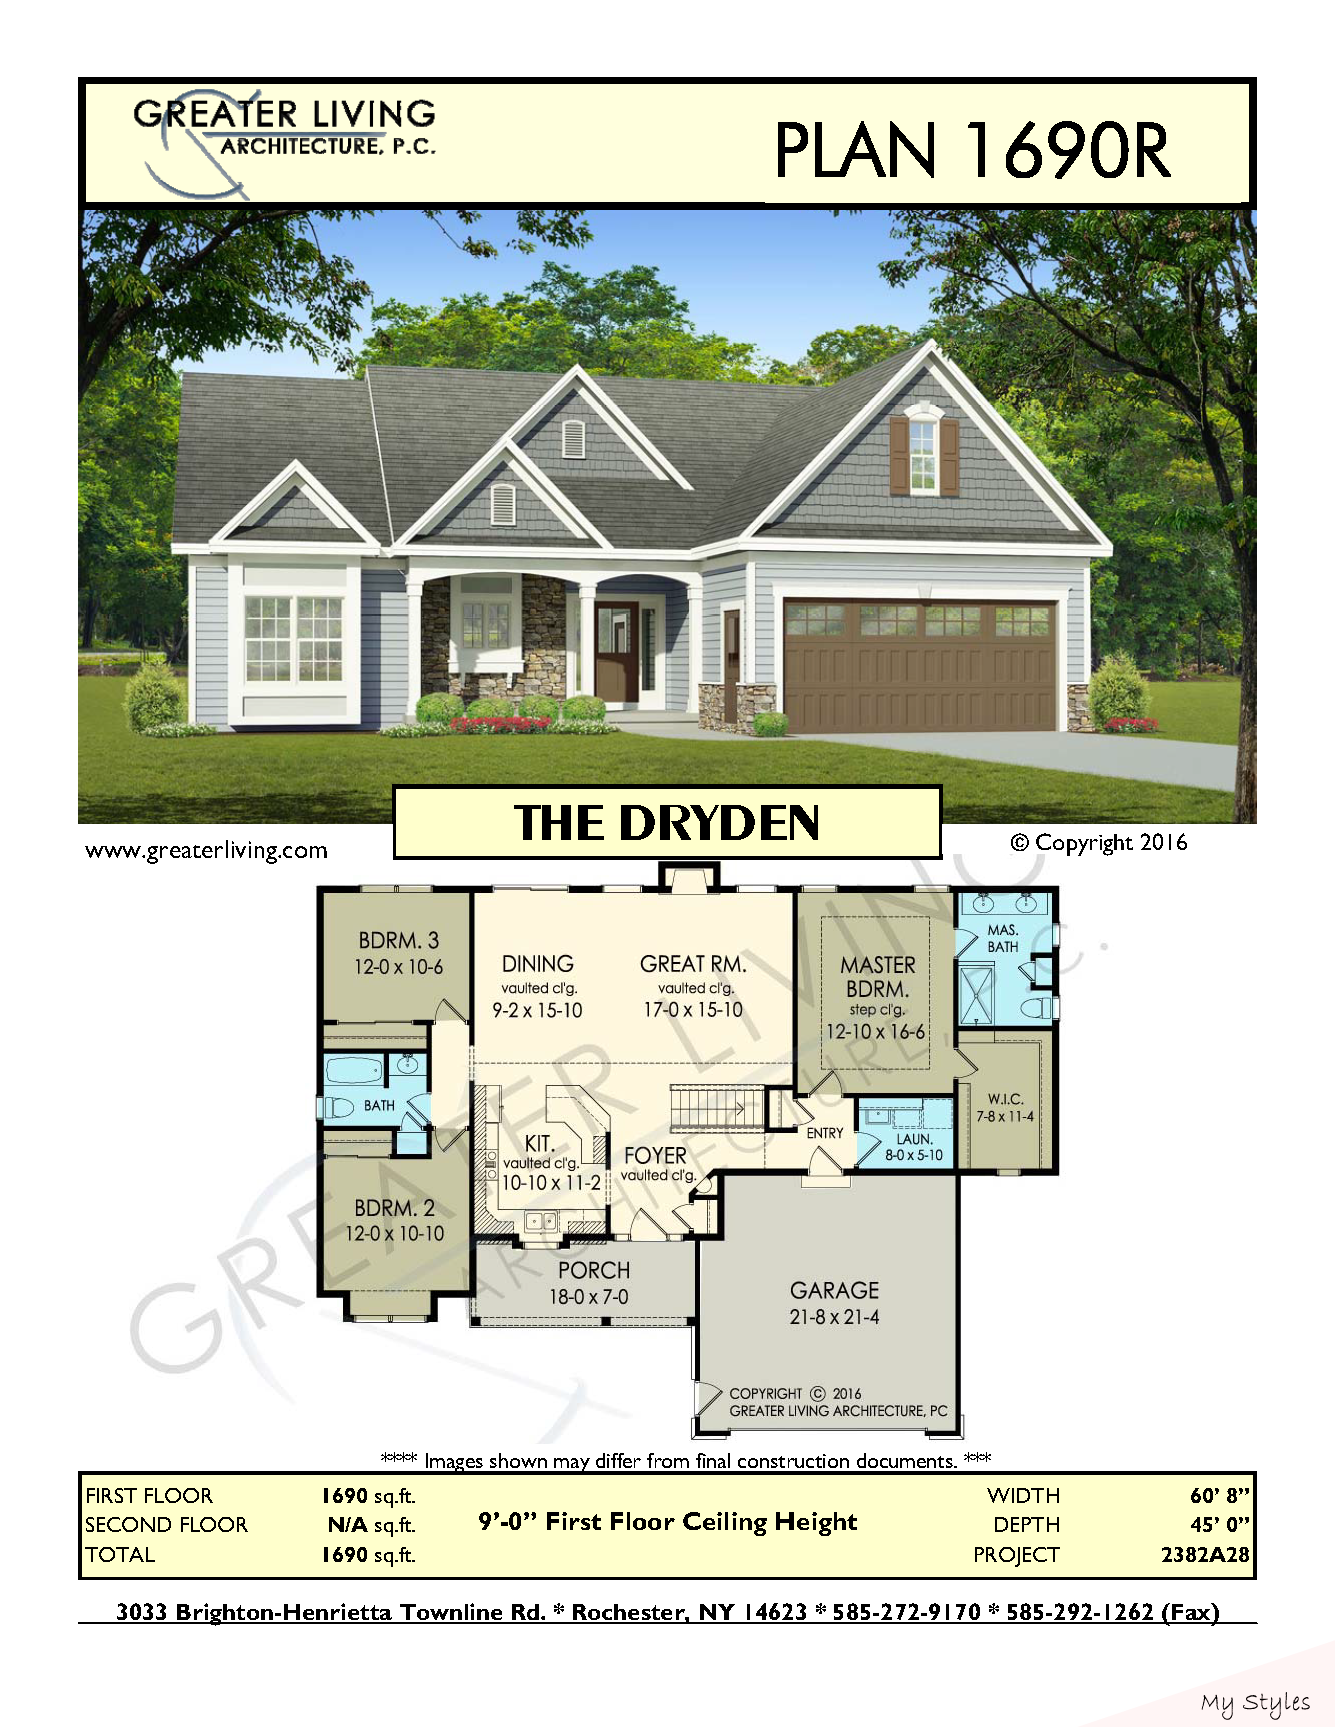 Plan 1690r The Dryden Ranch House Plan Greater Living Architecture Residential Arch Residential A In 2020 Craftsman House Plans Ranch House Plans House Plans